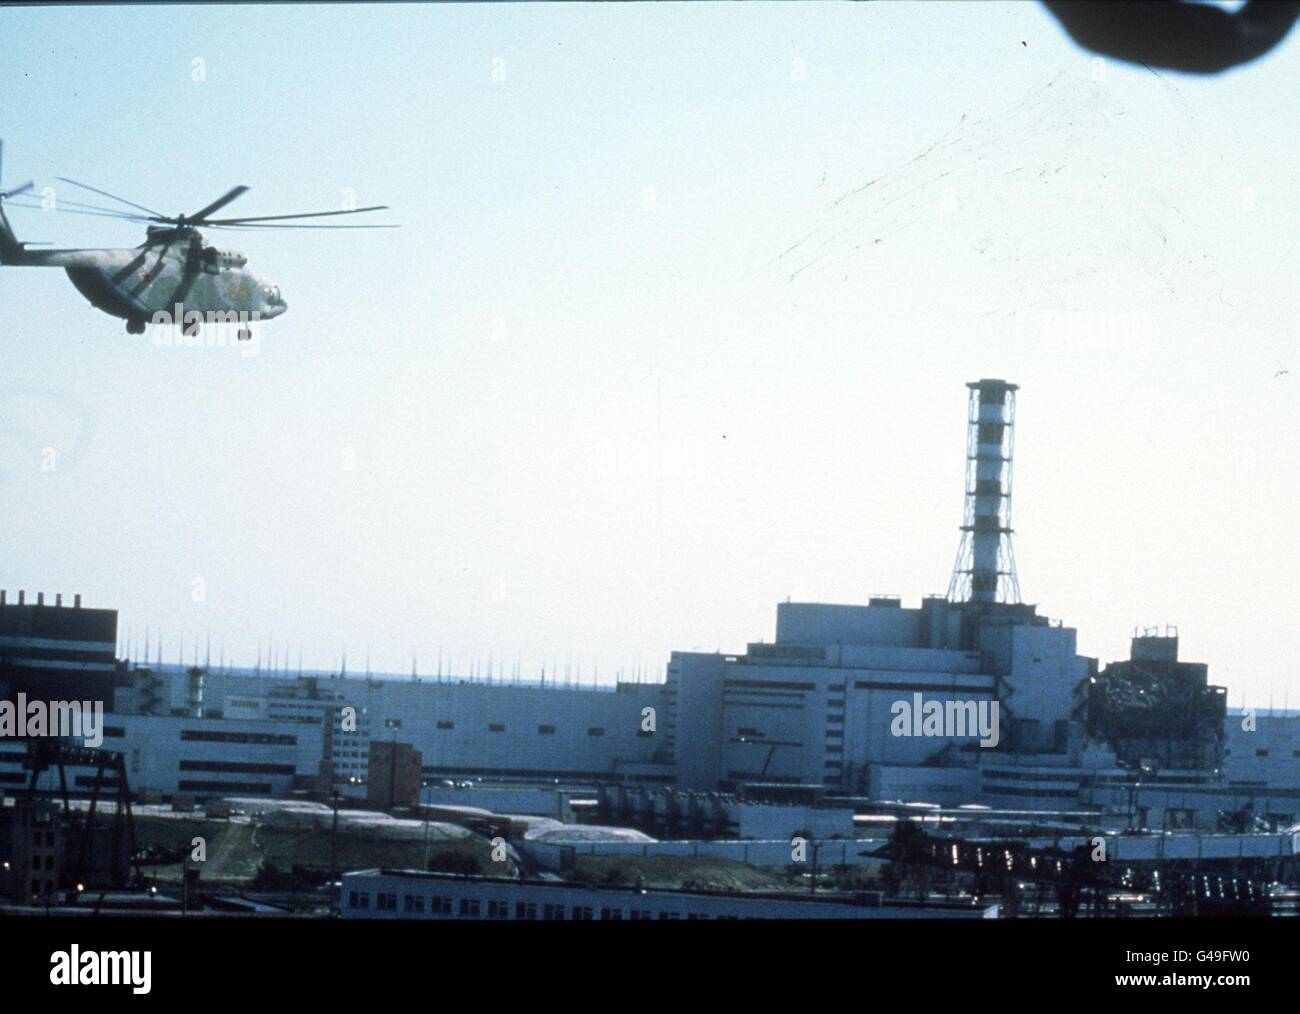 PA NEWS PHOTO 237985-3 : APRIL 1986 : HELICOPTER OVER CHERNOBYL NUCLEAR POWERPLANT IN THE UKRAINE, USSR, AFTER THE - Stock Image